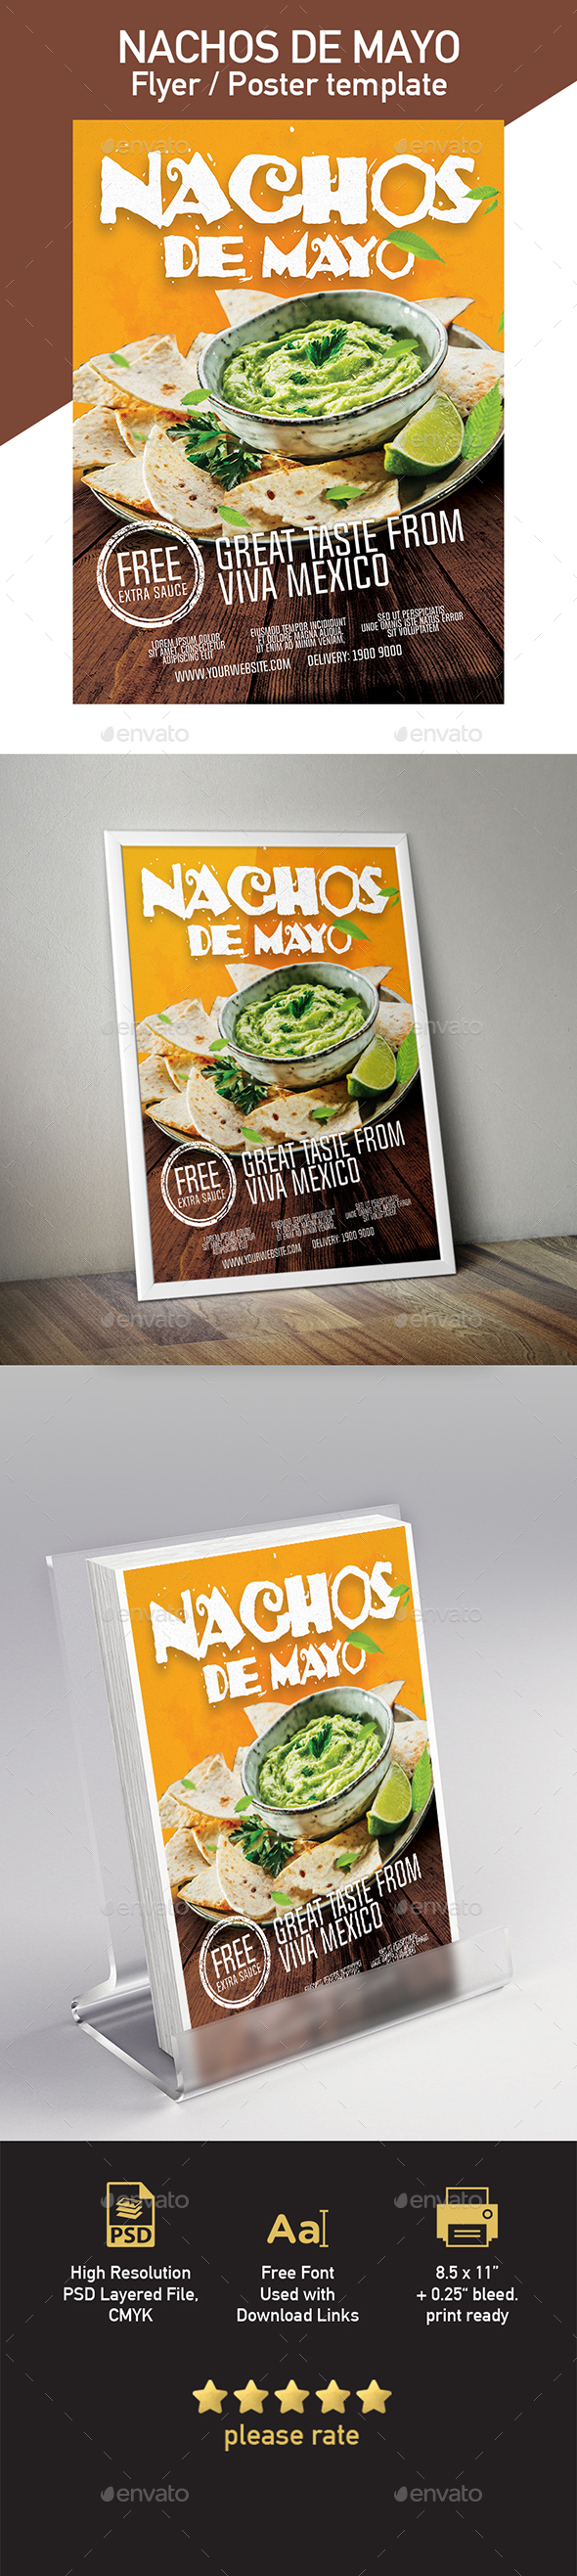 Nachos Flyer / Poster Template - Restaurant Flyers